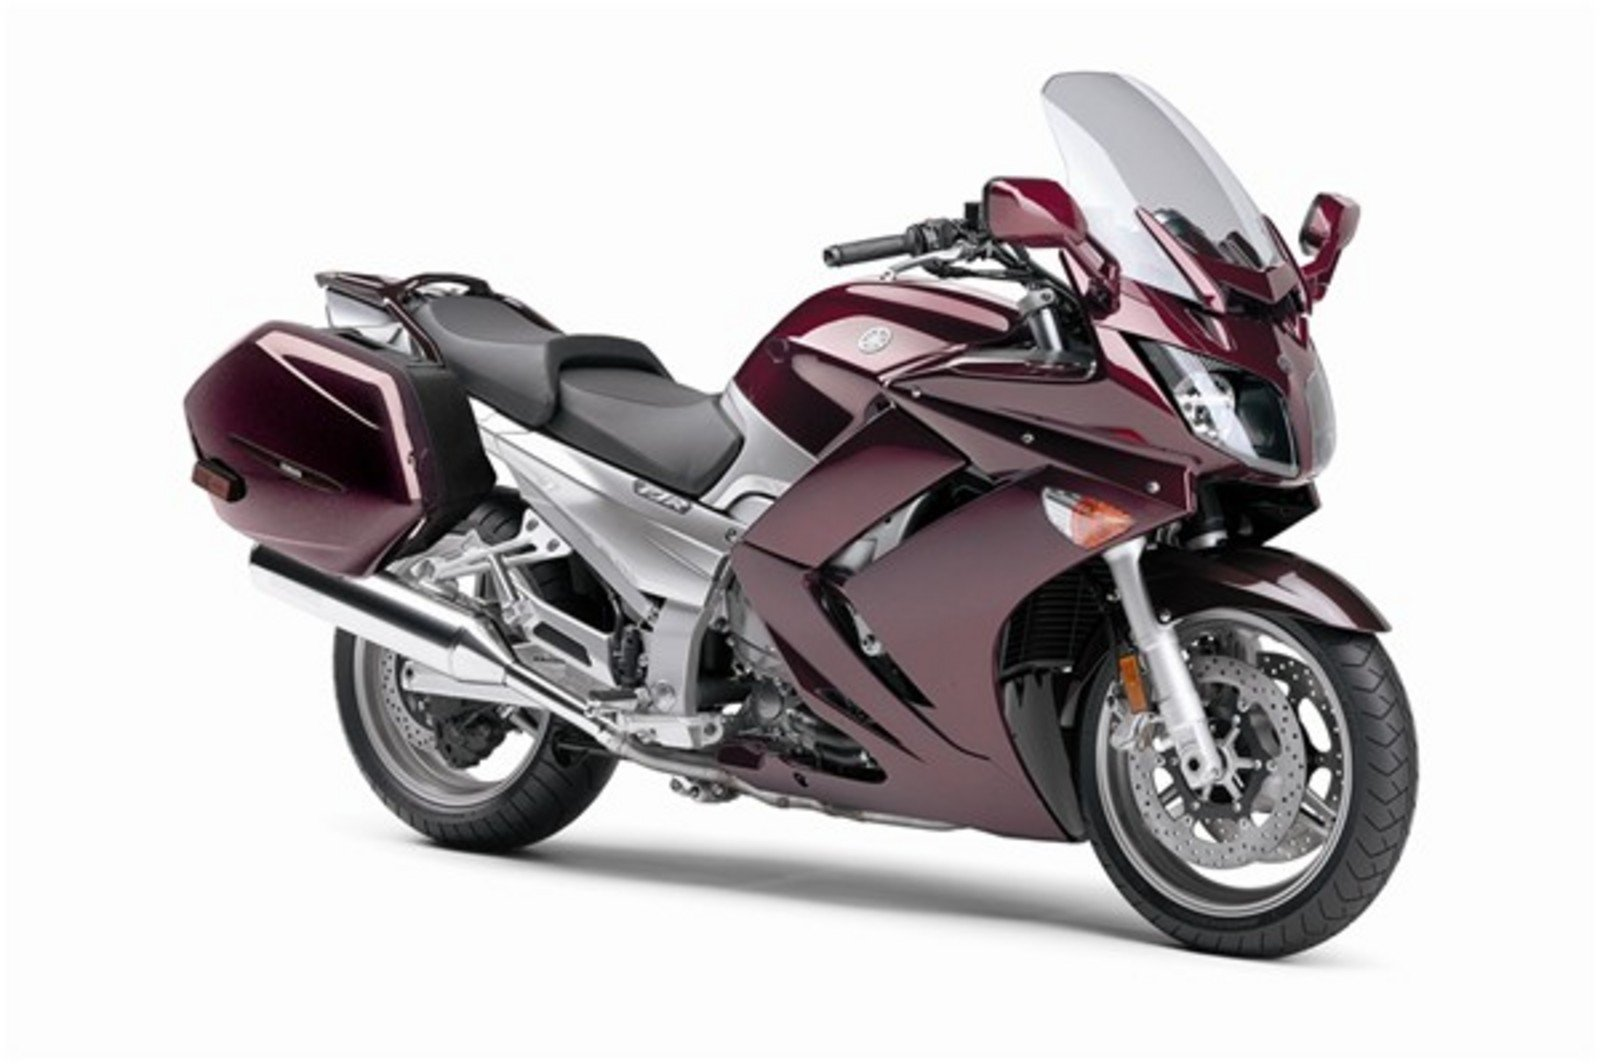 2007 yamaha fjr1300a review top speed. Black Bedroom Furniture Sets. Home Design Ideas